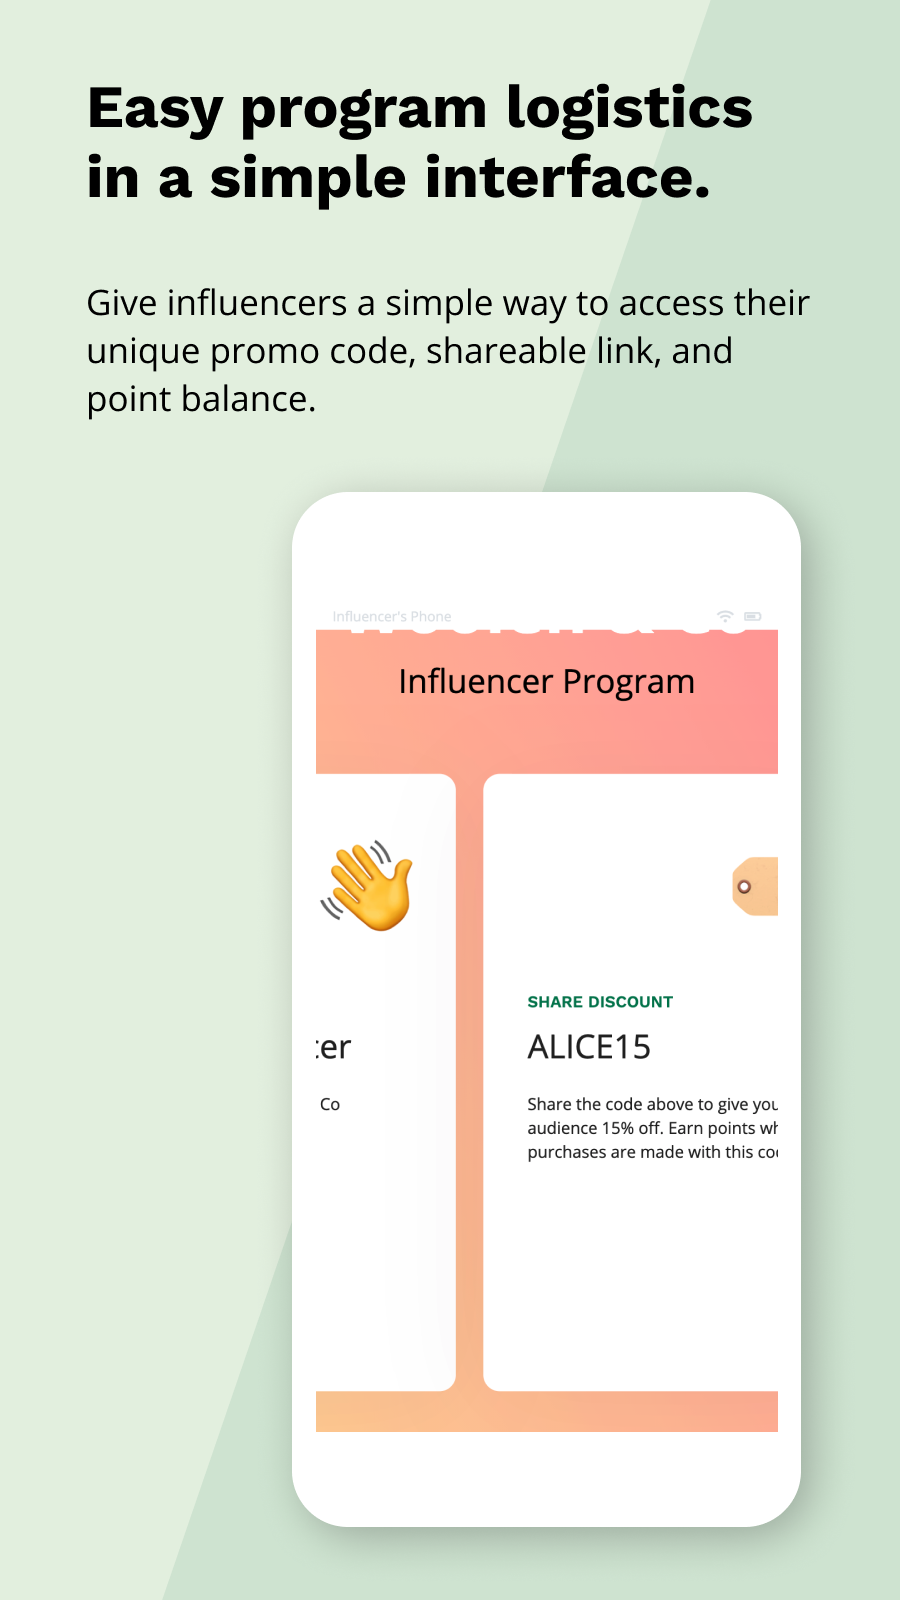 Communicate program details easily with a simple interface